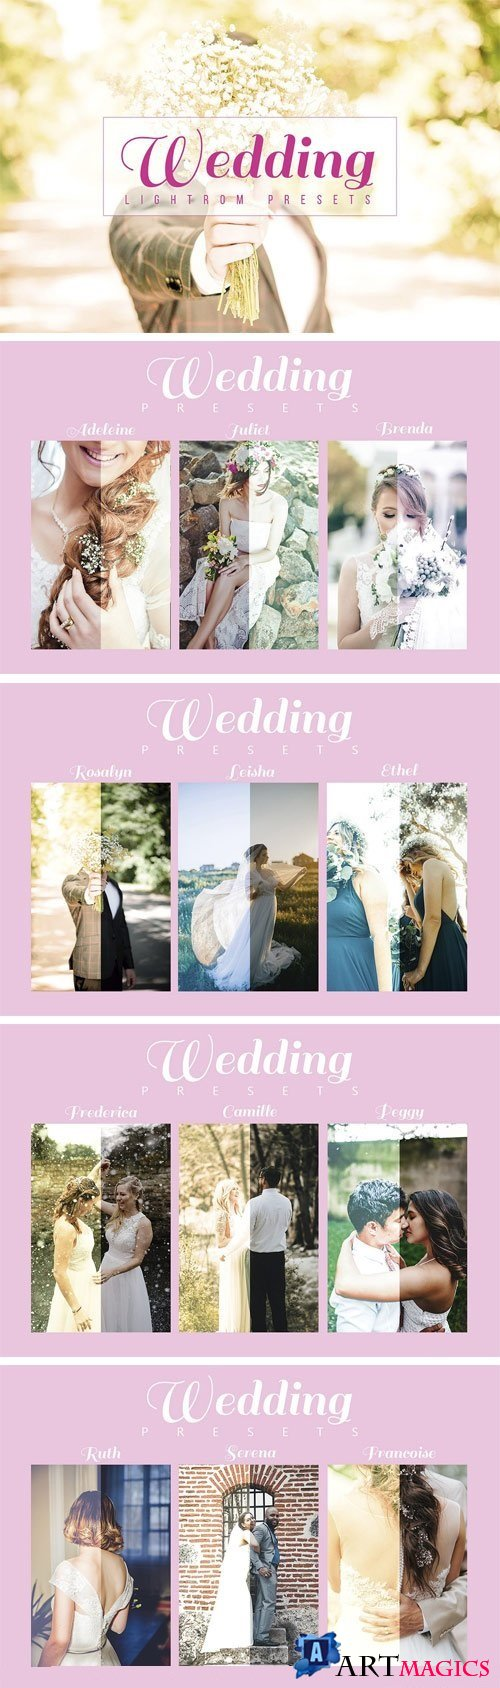 Wedding Lightroom Presets 1884034